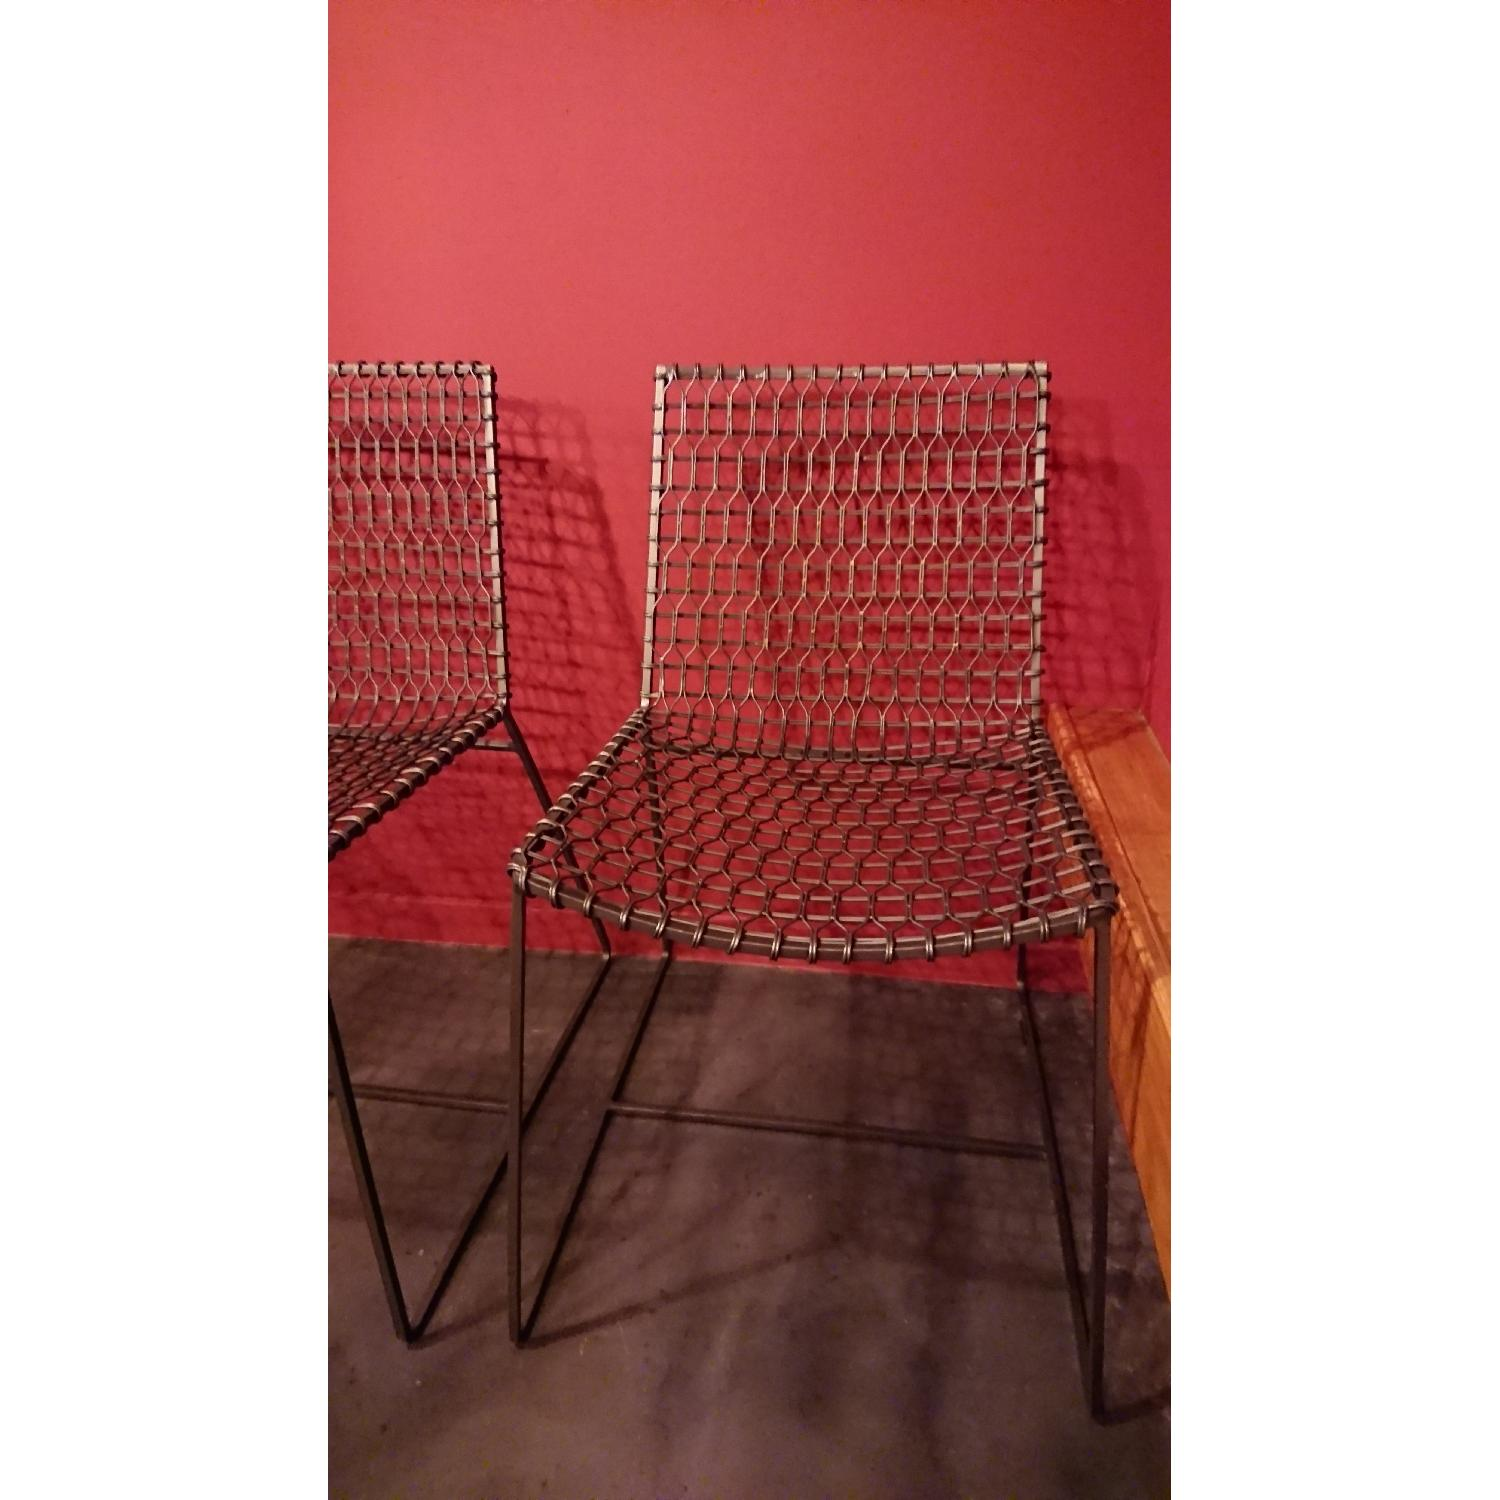 Crate & Barrel Tig Metal Dining Chairs - image-1